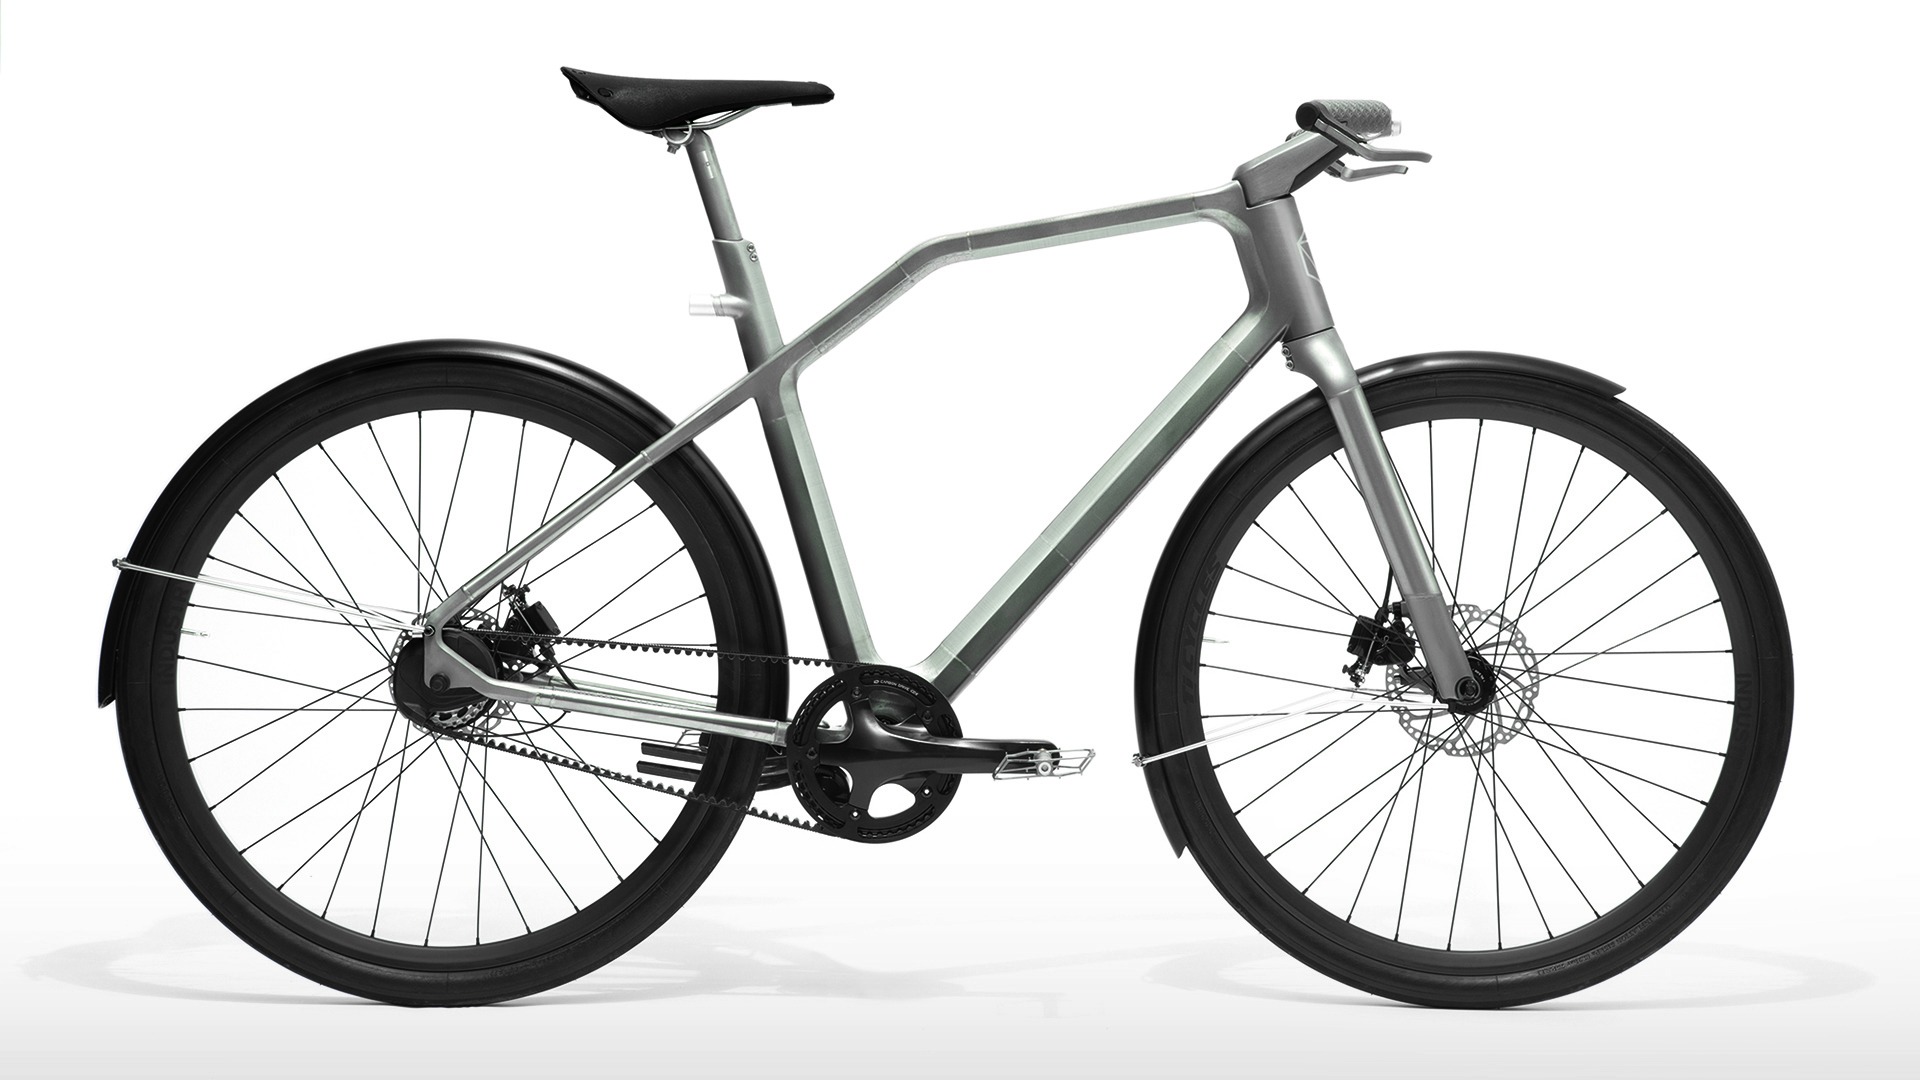 industry-ti-cycles-solid-bike-product-concept-1